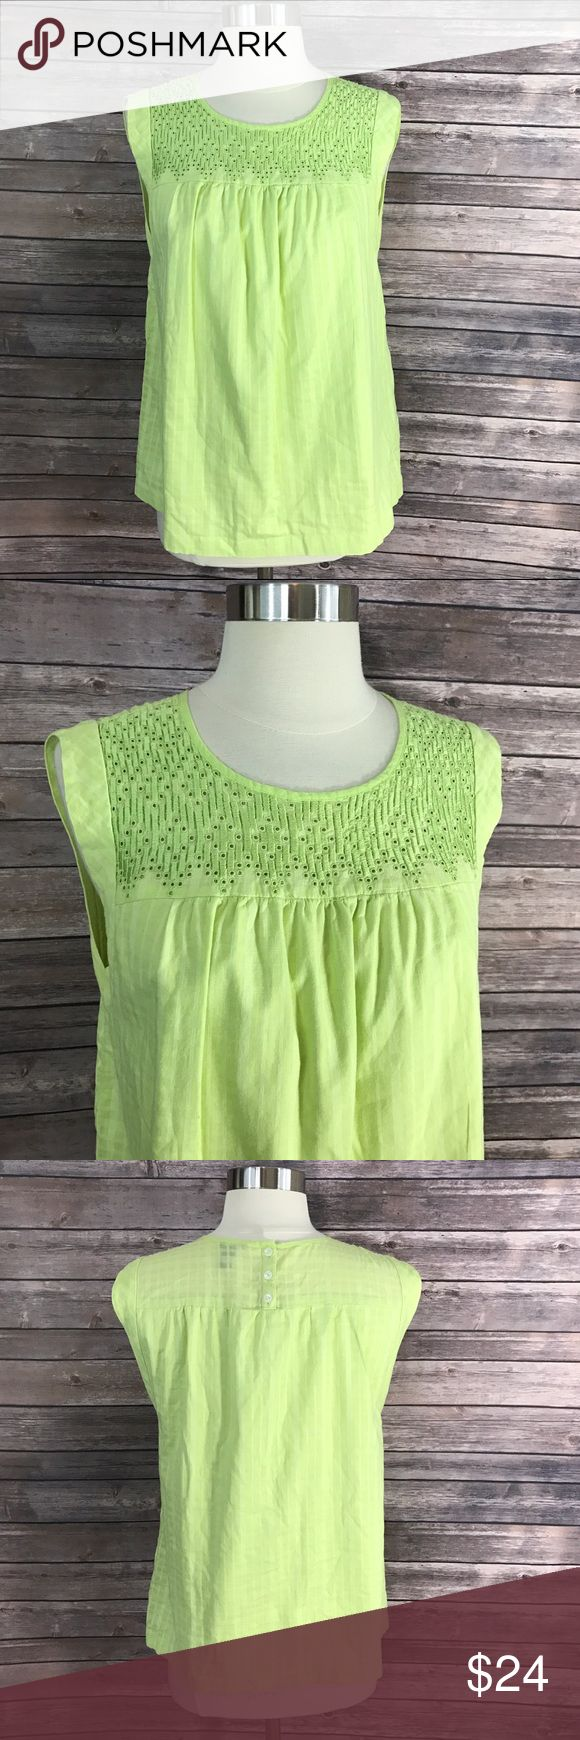 J Crew Sz 6 Womens Top Lime Green Embroidered Neck Measurements: (in inches) - Underarm to underarm: 19 - Length: 24 Good, gently used condition J. Crew Tops Blouses